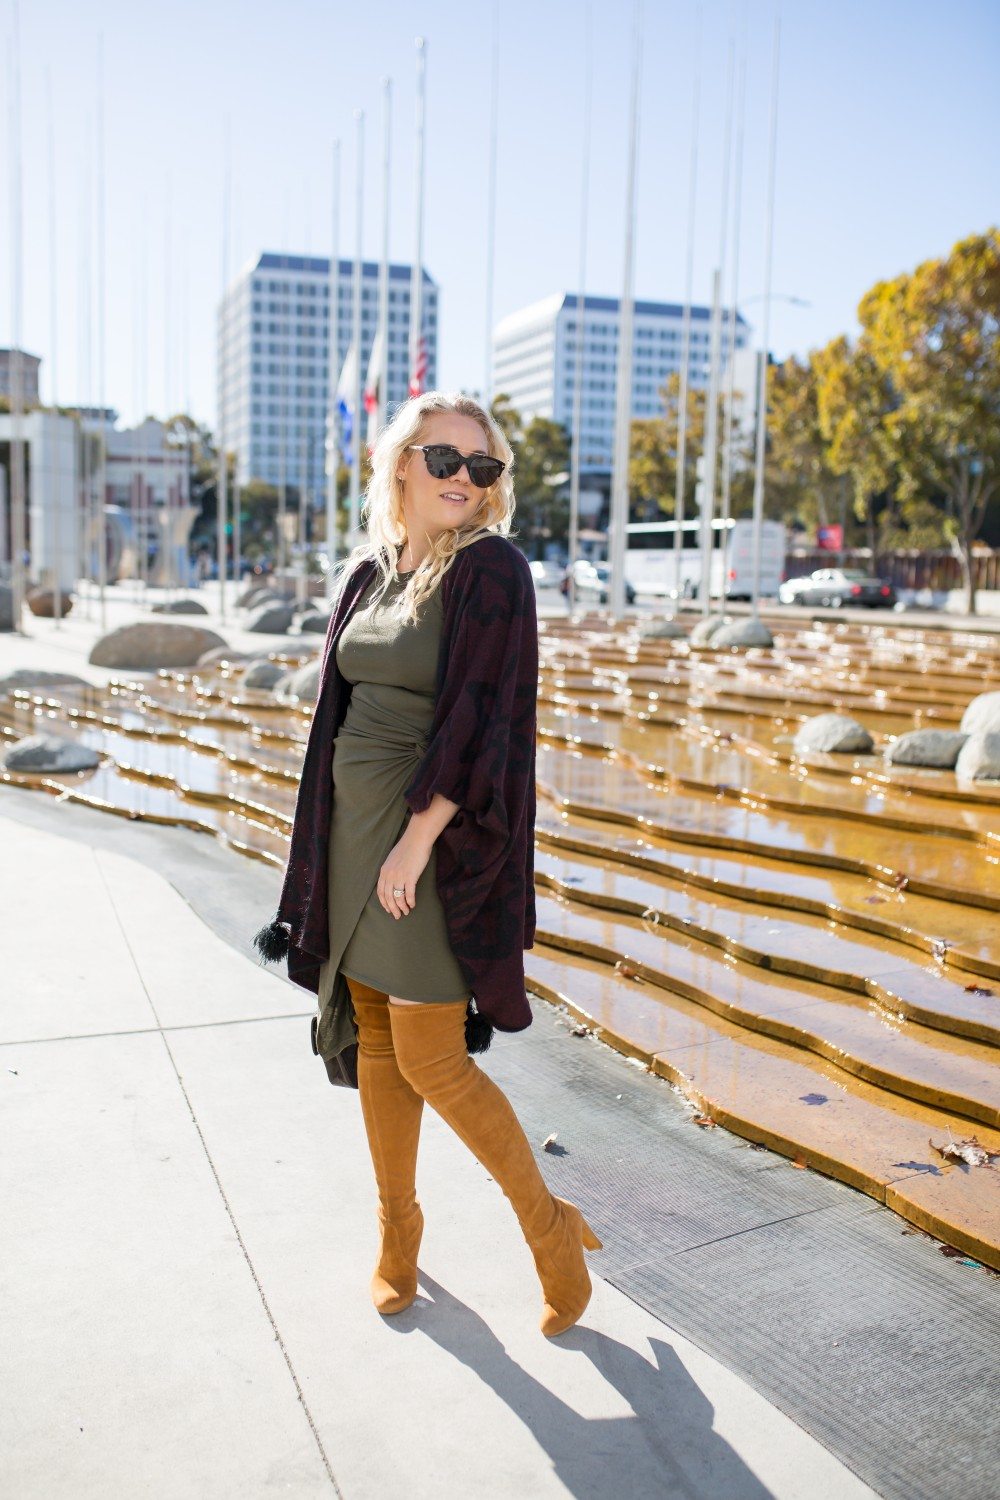 Styling a Bodycon dress in Your 30's is not the same as in your 20's. Sharing my tips for rocking the Bodycon dress in your 30's and beyond - Have Need Want